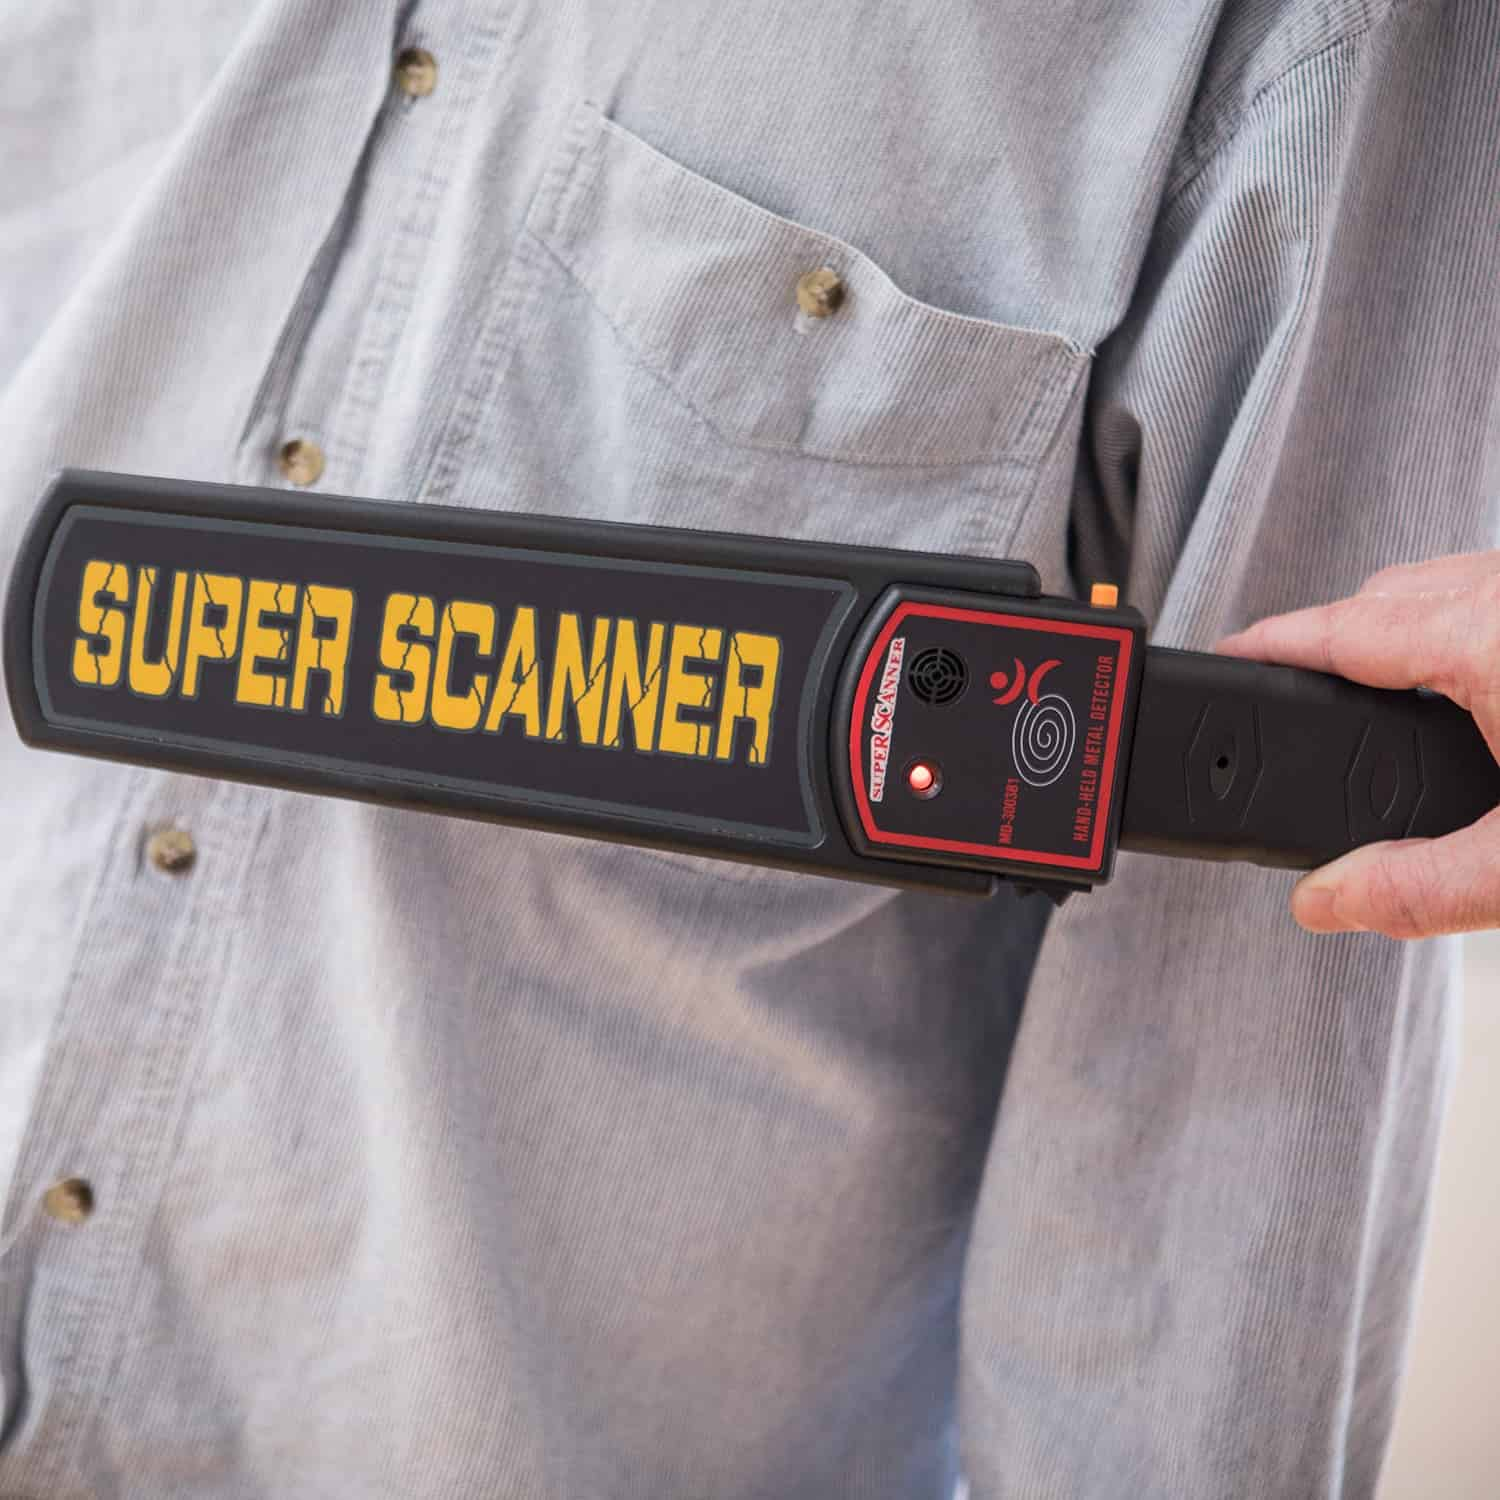 Handheld Security Scanner Metal Detector